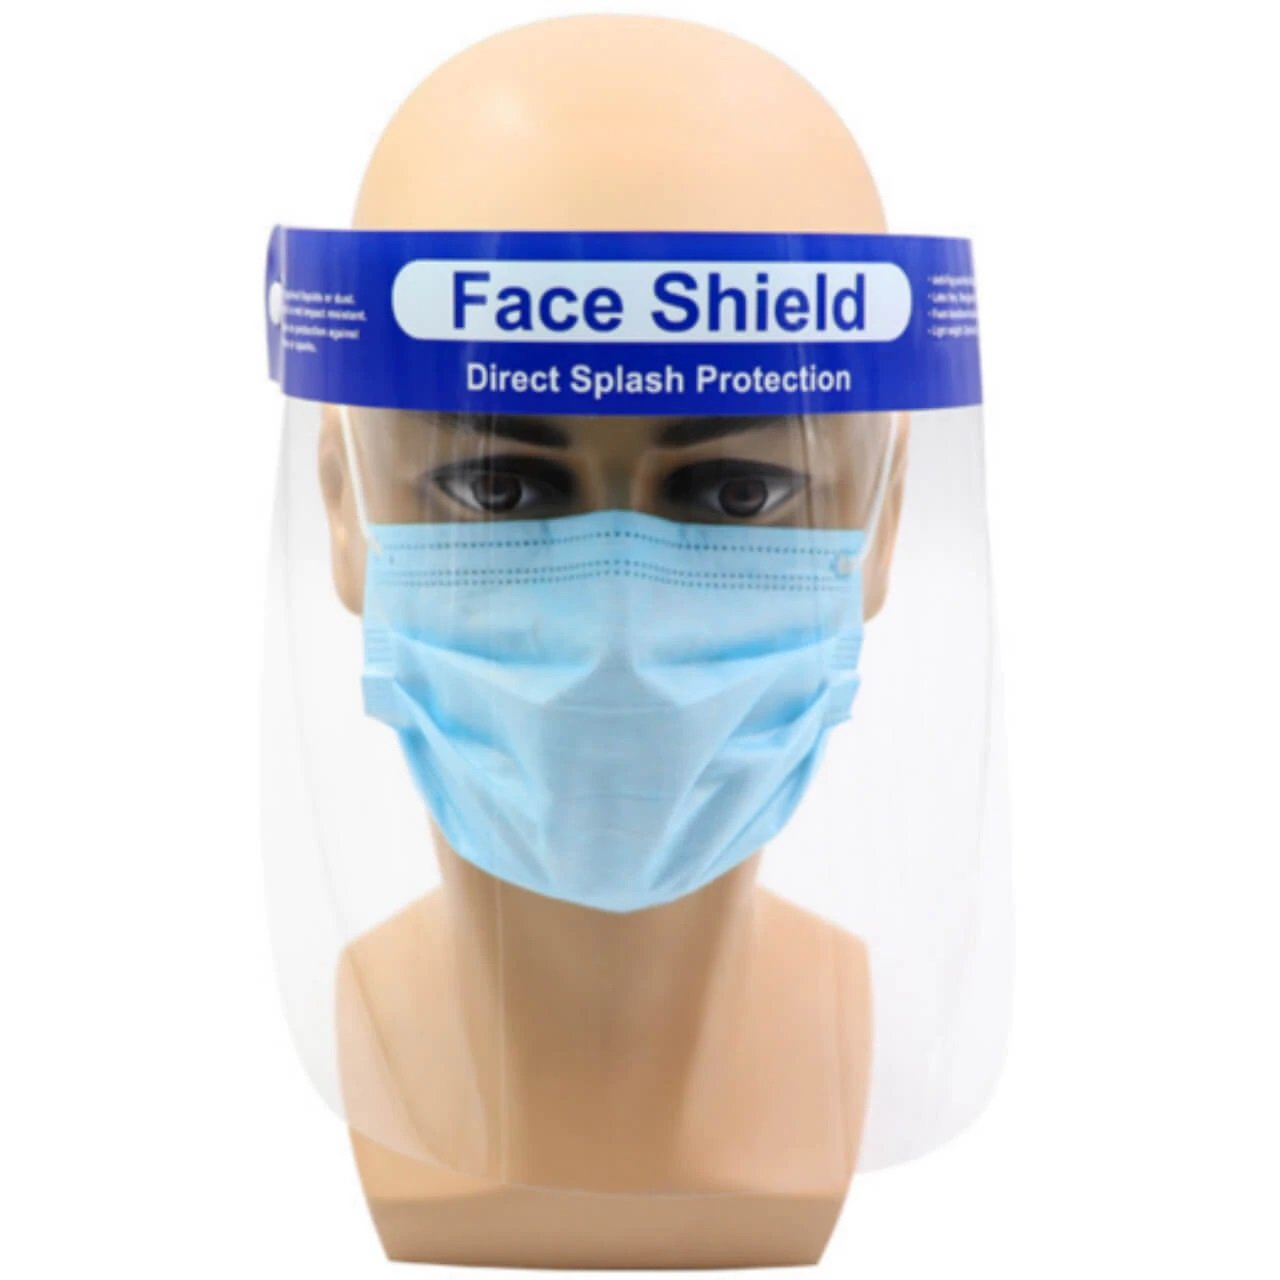 FACE SHIELD SPLASH RESISTANT 33CM x 22CM. EACH